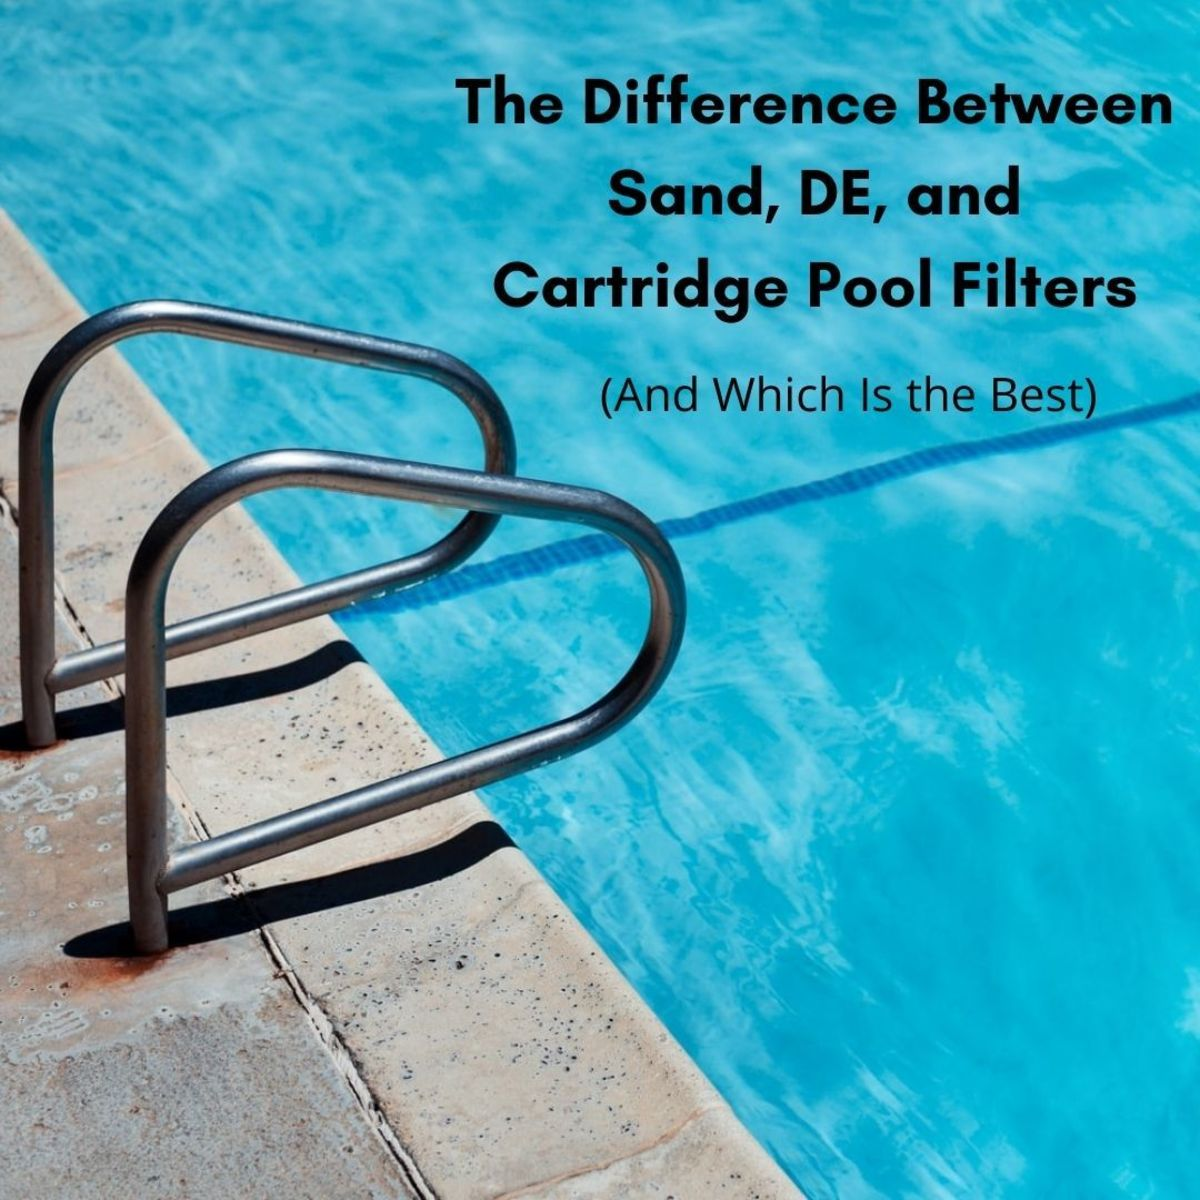 The best pool filter depends on what kind of pool you have.